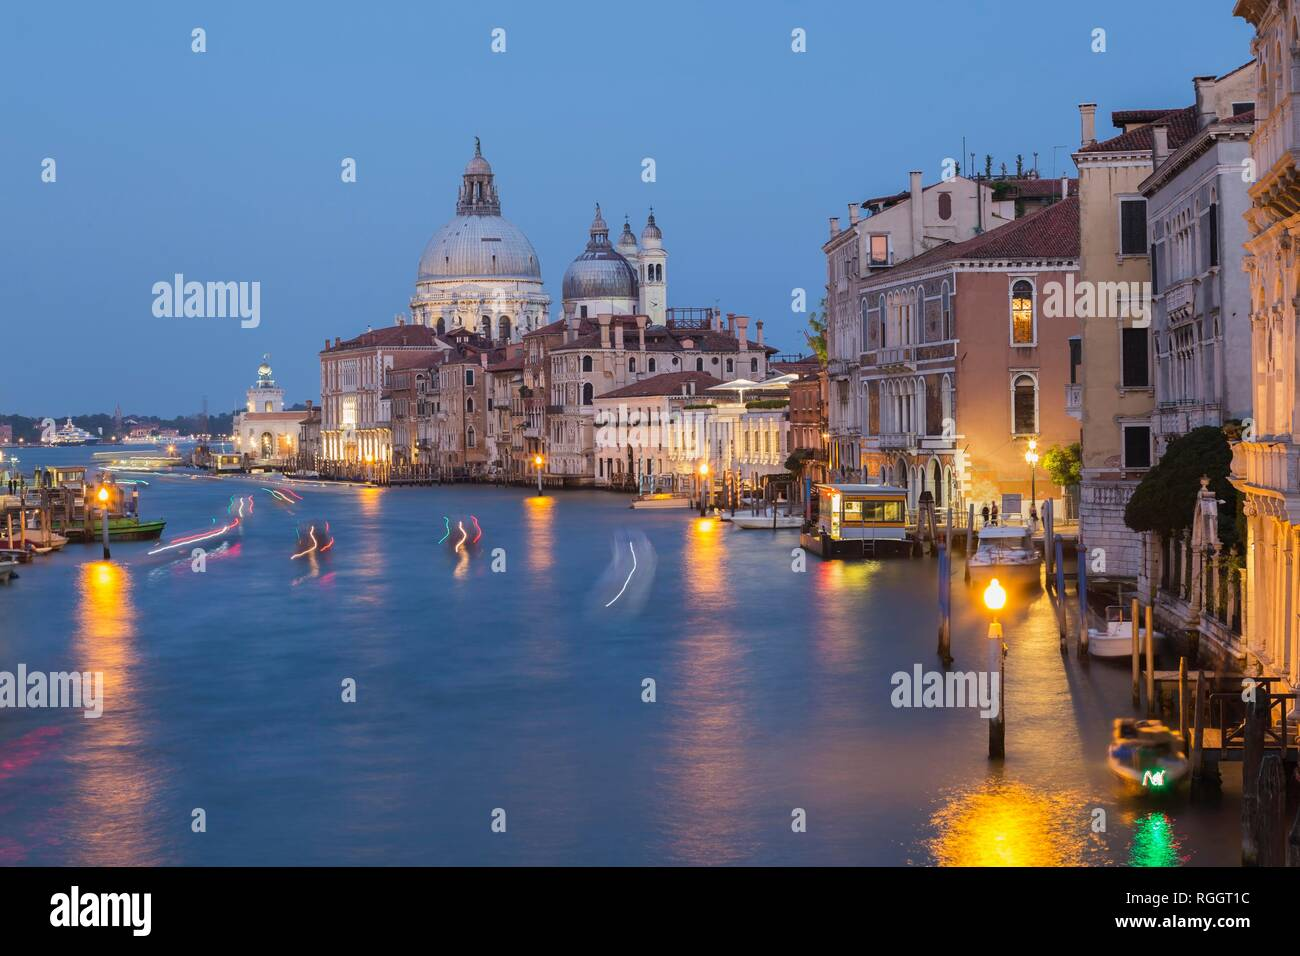 Grand Canal with light trails from water taxis, vaporettos in movement plus Renaissance architectural style palace buildings and - Stock Image